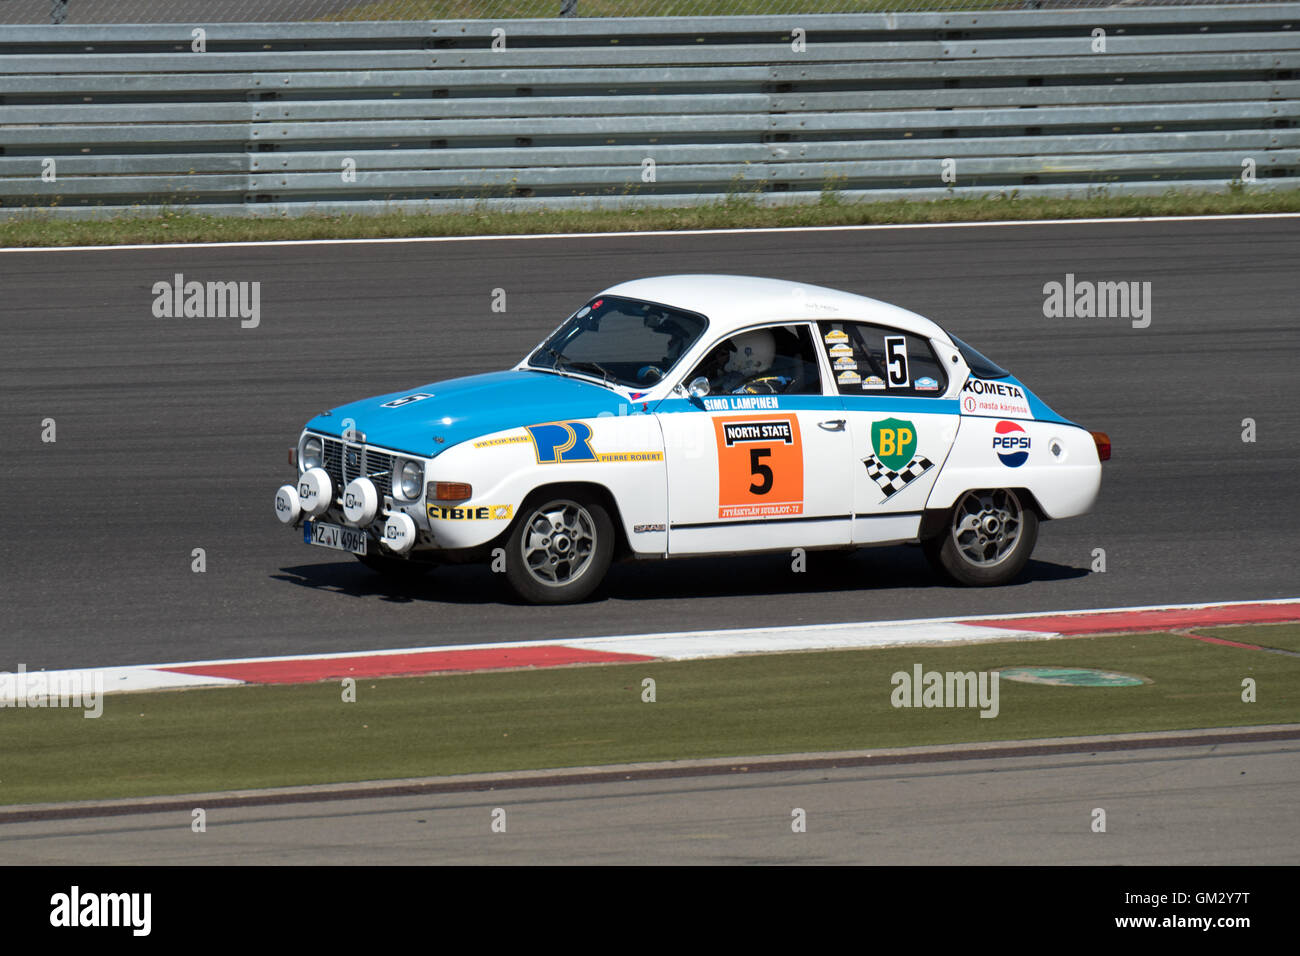 AvD Nuerburgring Oldtimers Grand Prix .Germany 13th and 14th of August 2016. - Stock Image